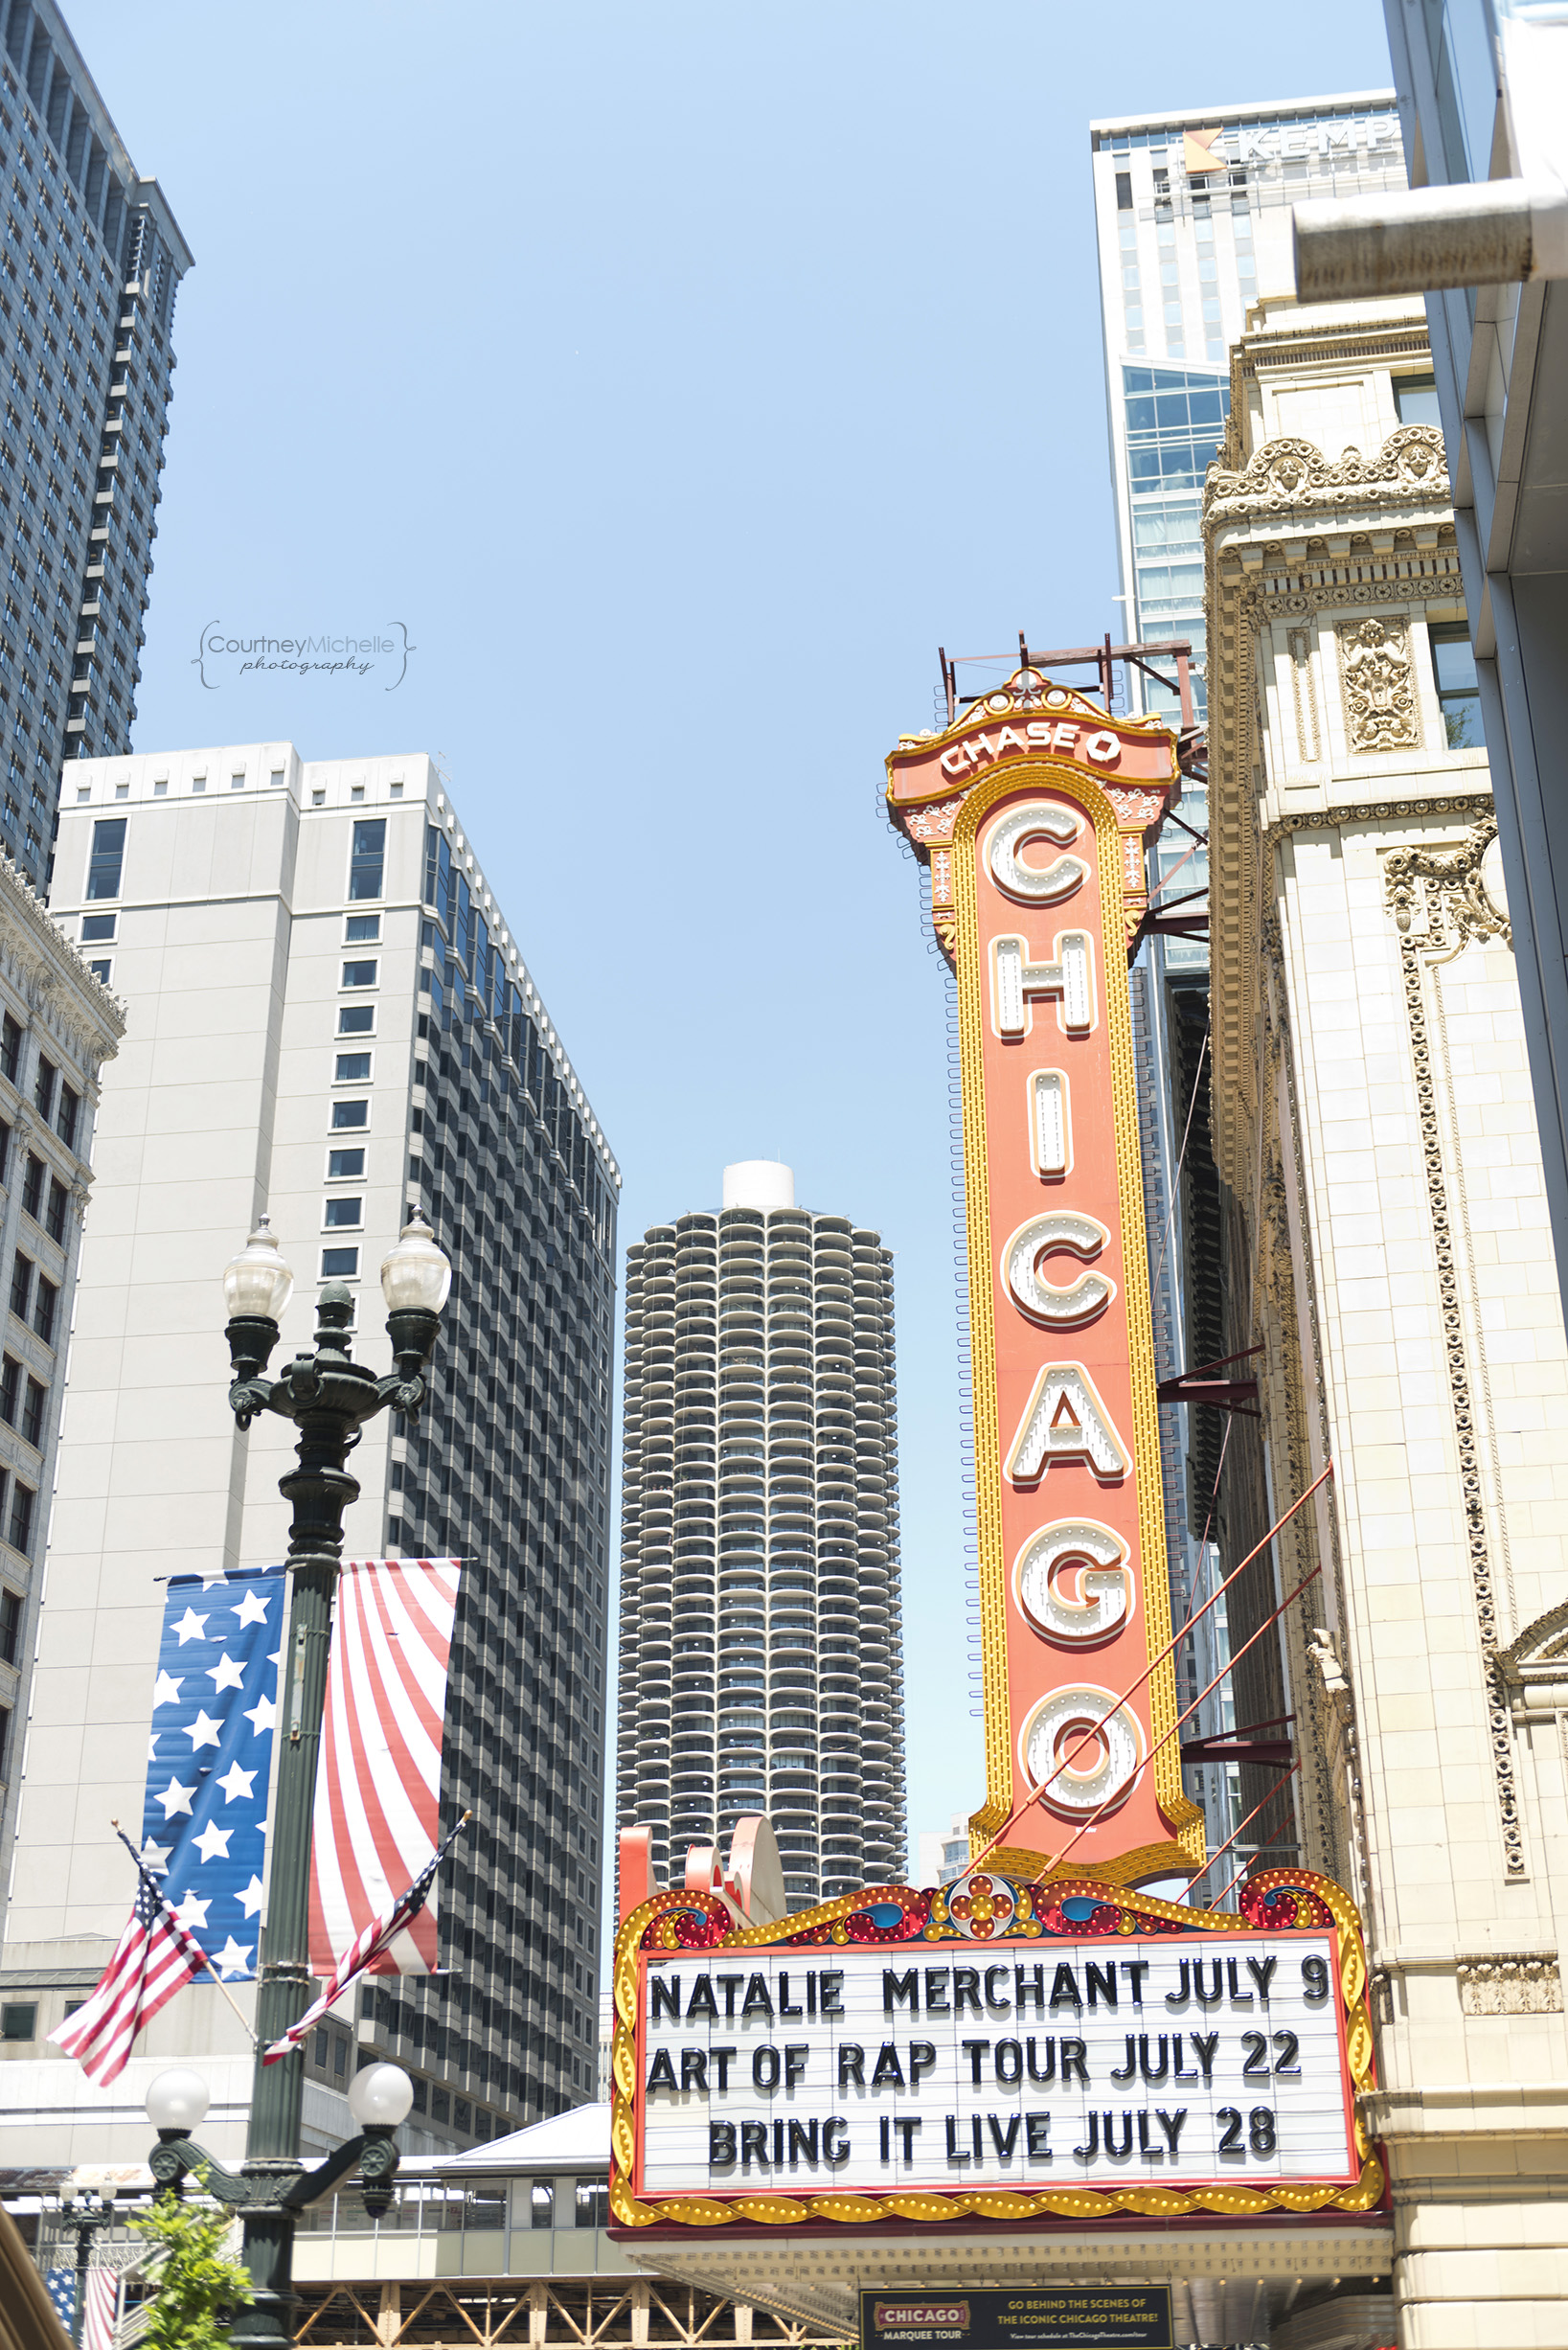 chicago_theatre_chicago_street_photography_courtney_laper_photography.jpg